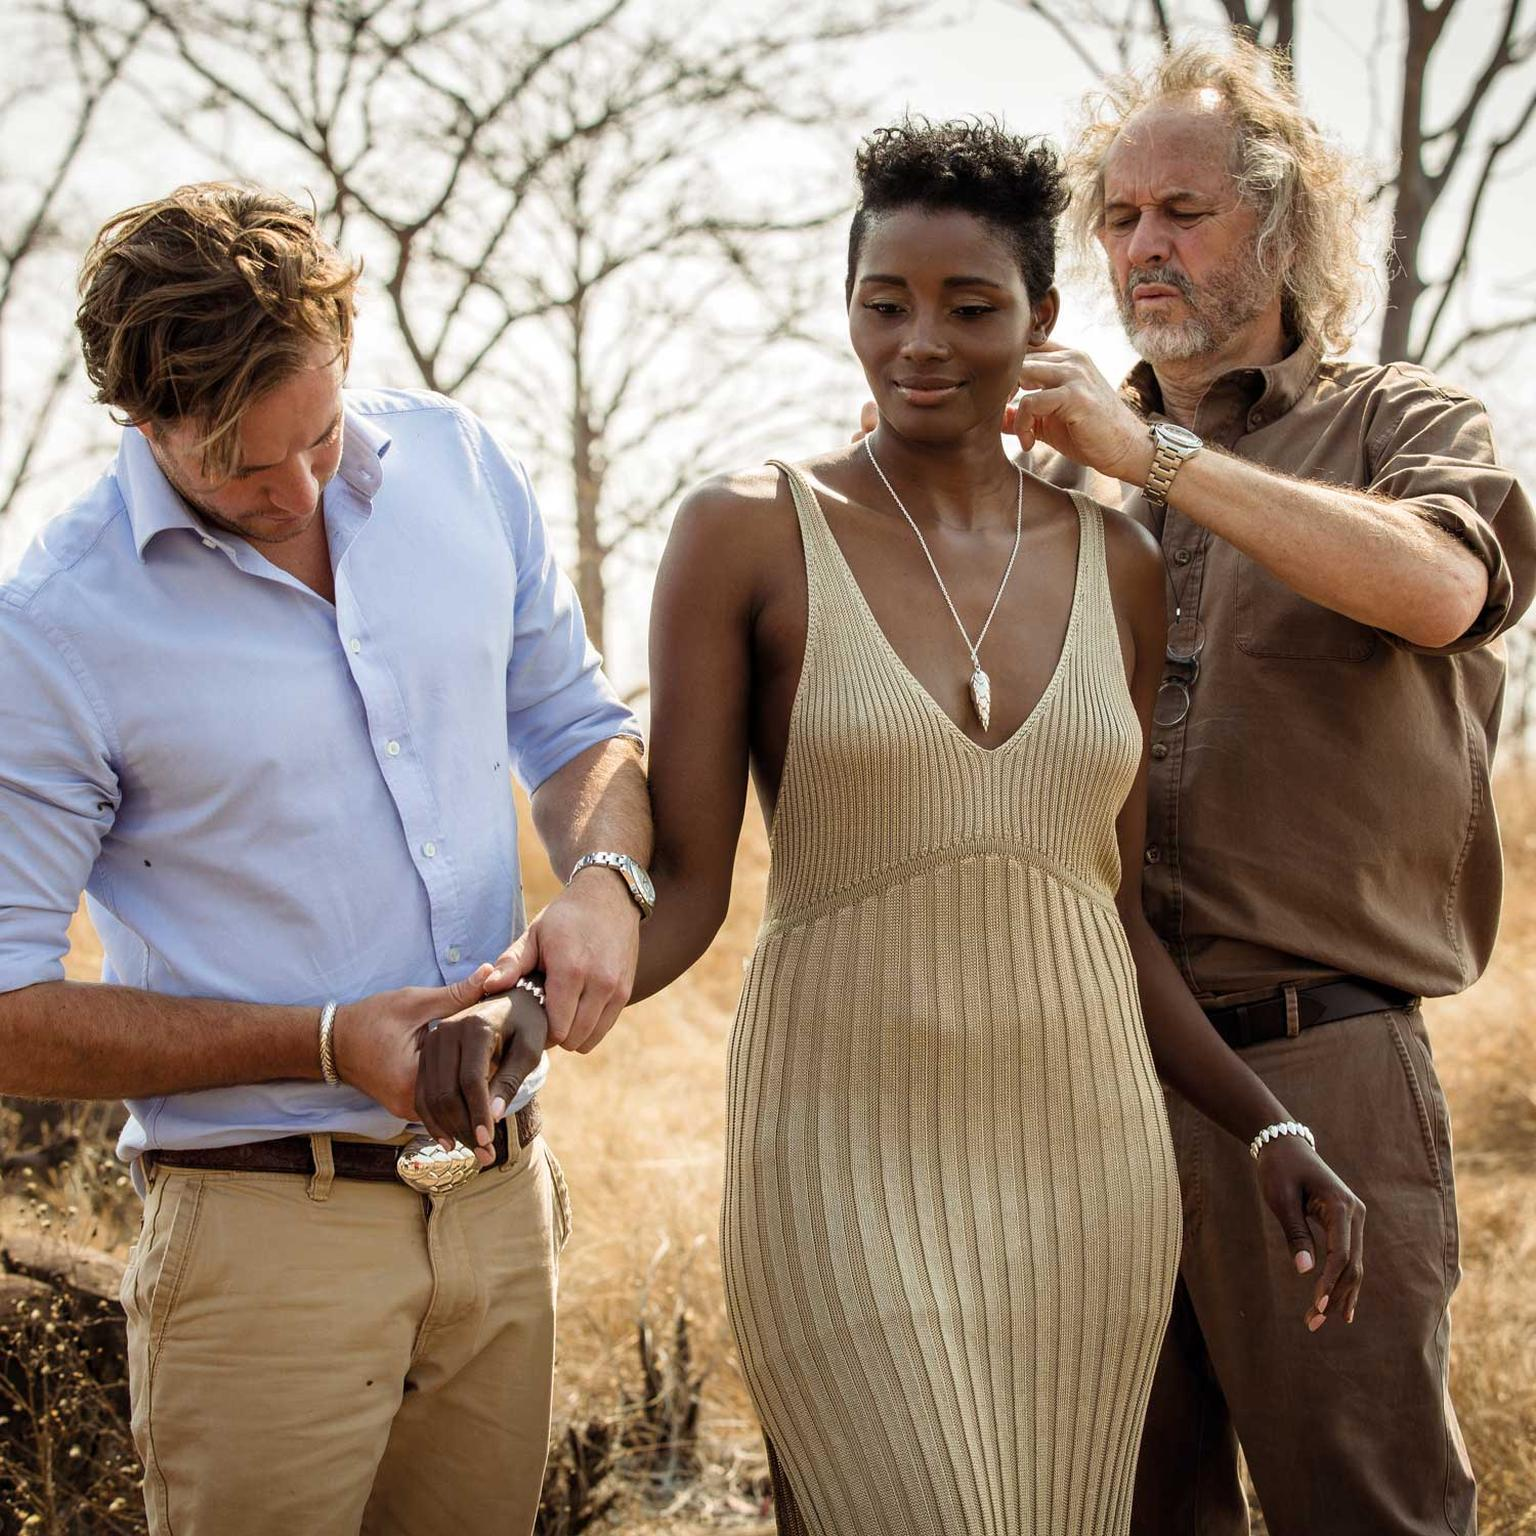 Patrick Mavros and son Pat Jnr on Pangolin jewellery shoot in Zimbabwe